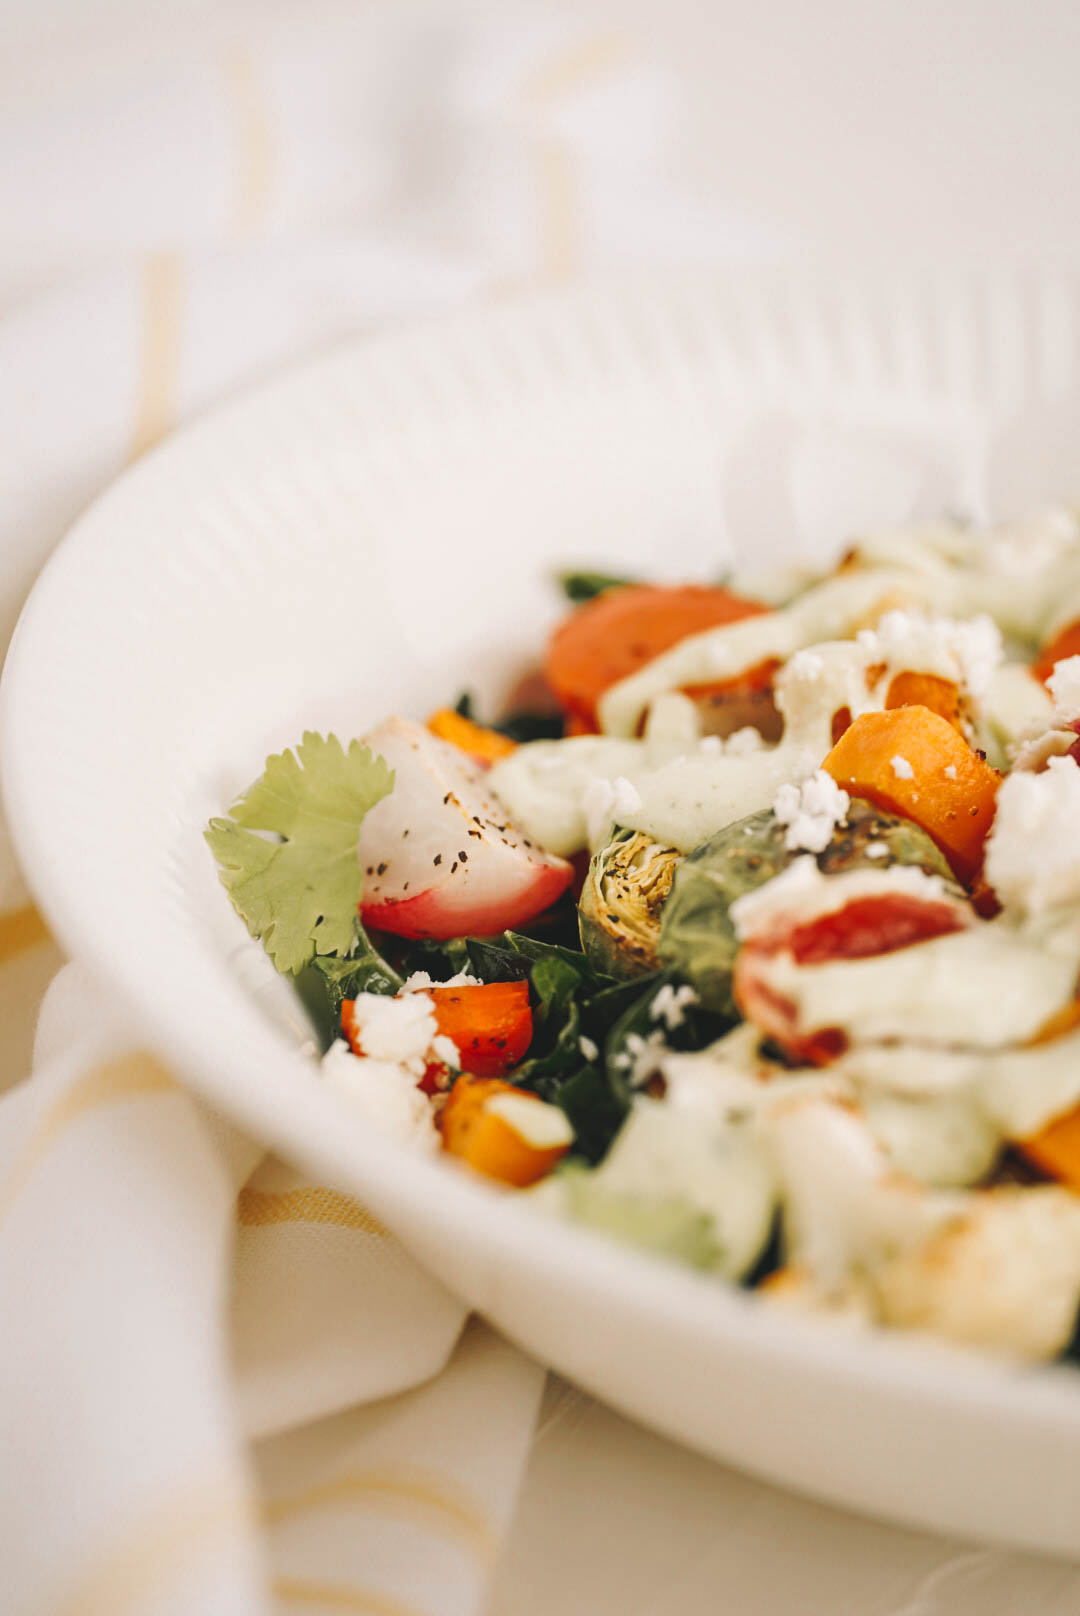 roasted vegetable salad in white salad bowl on dishcloth